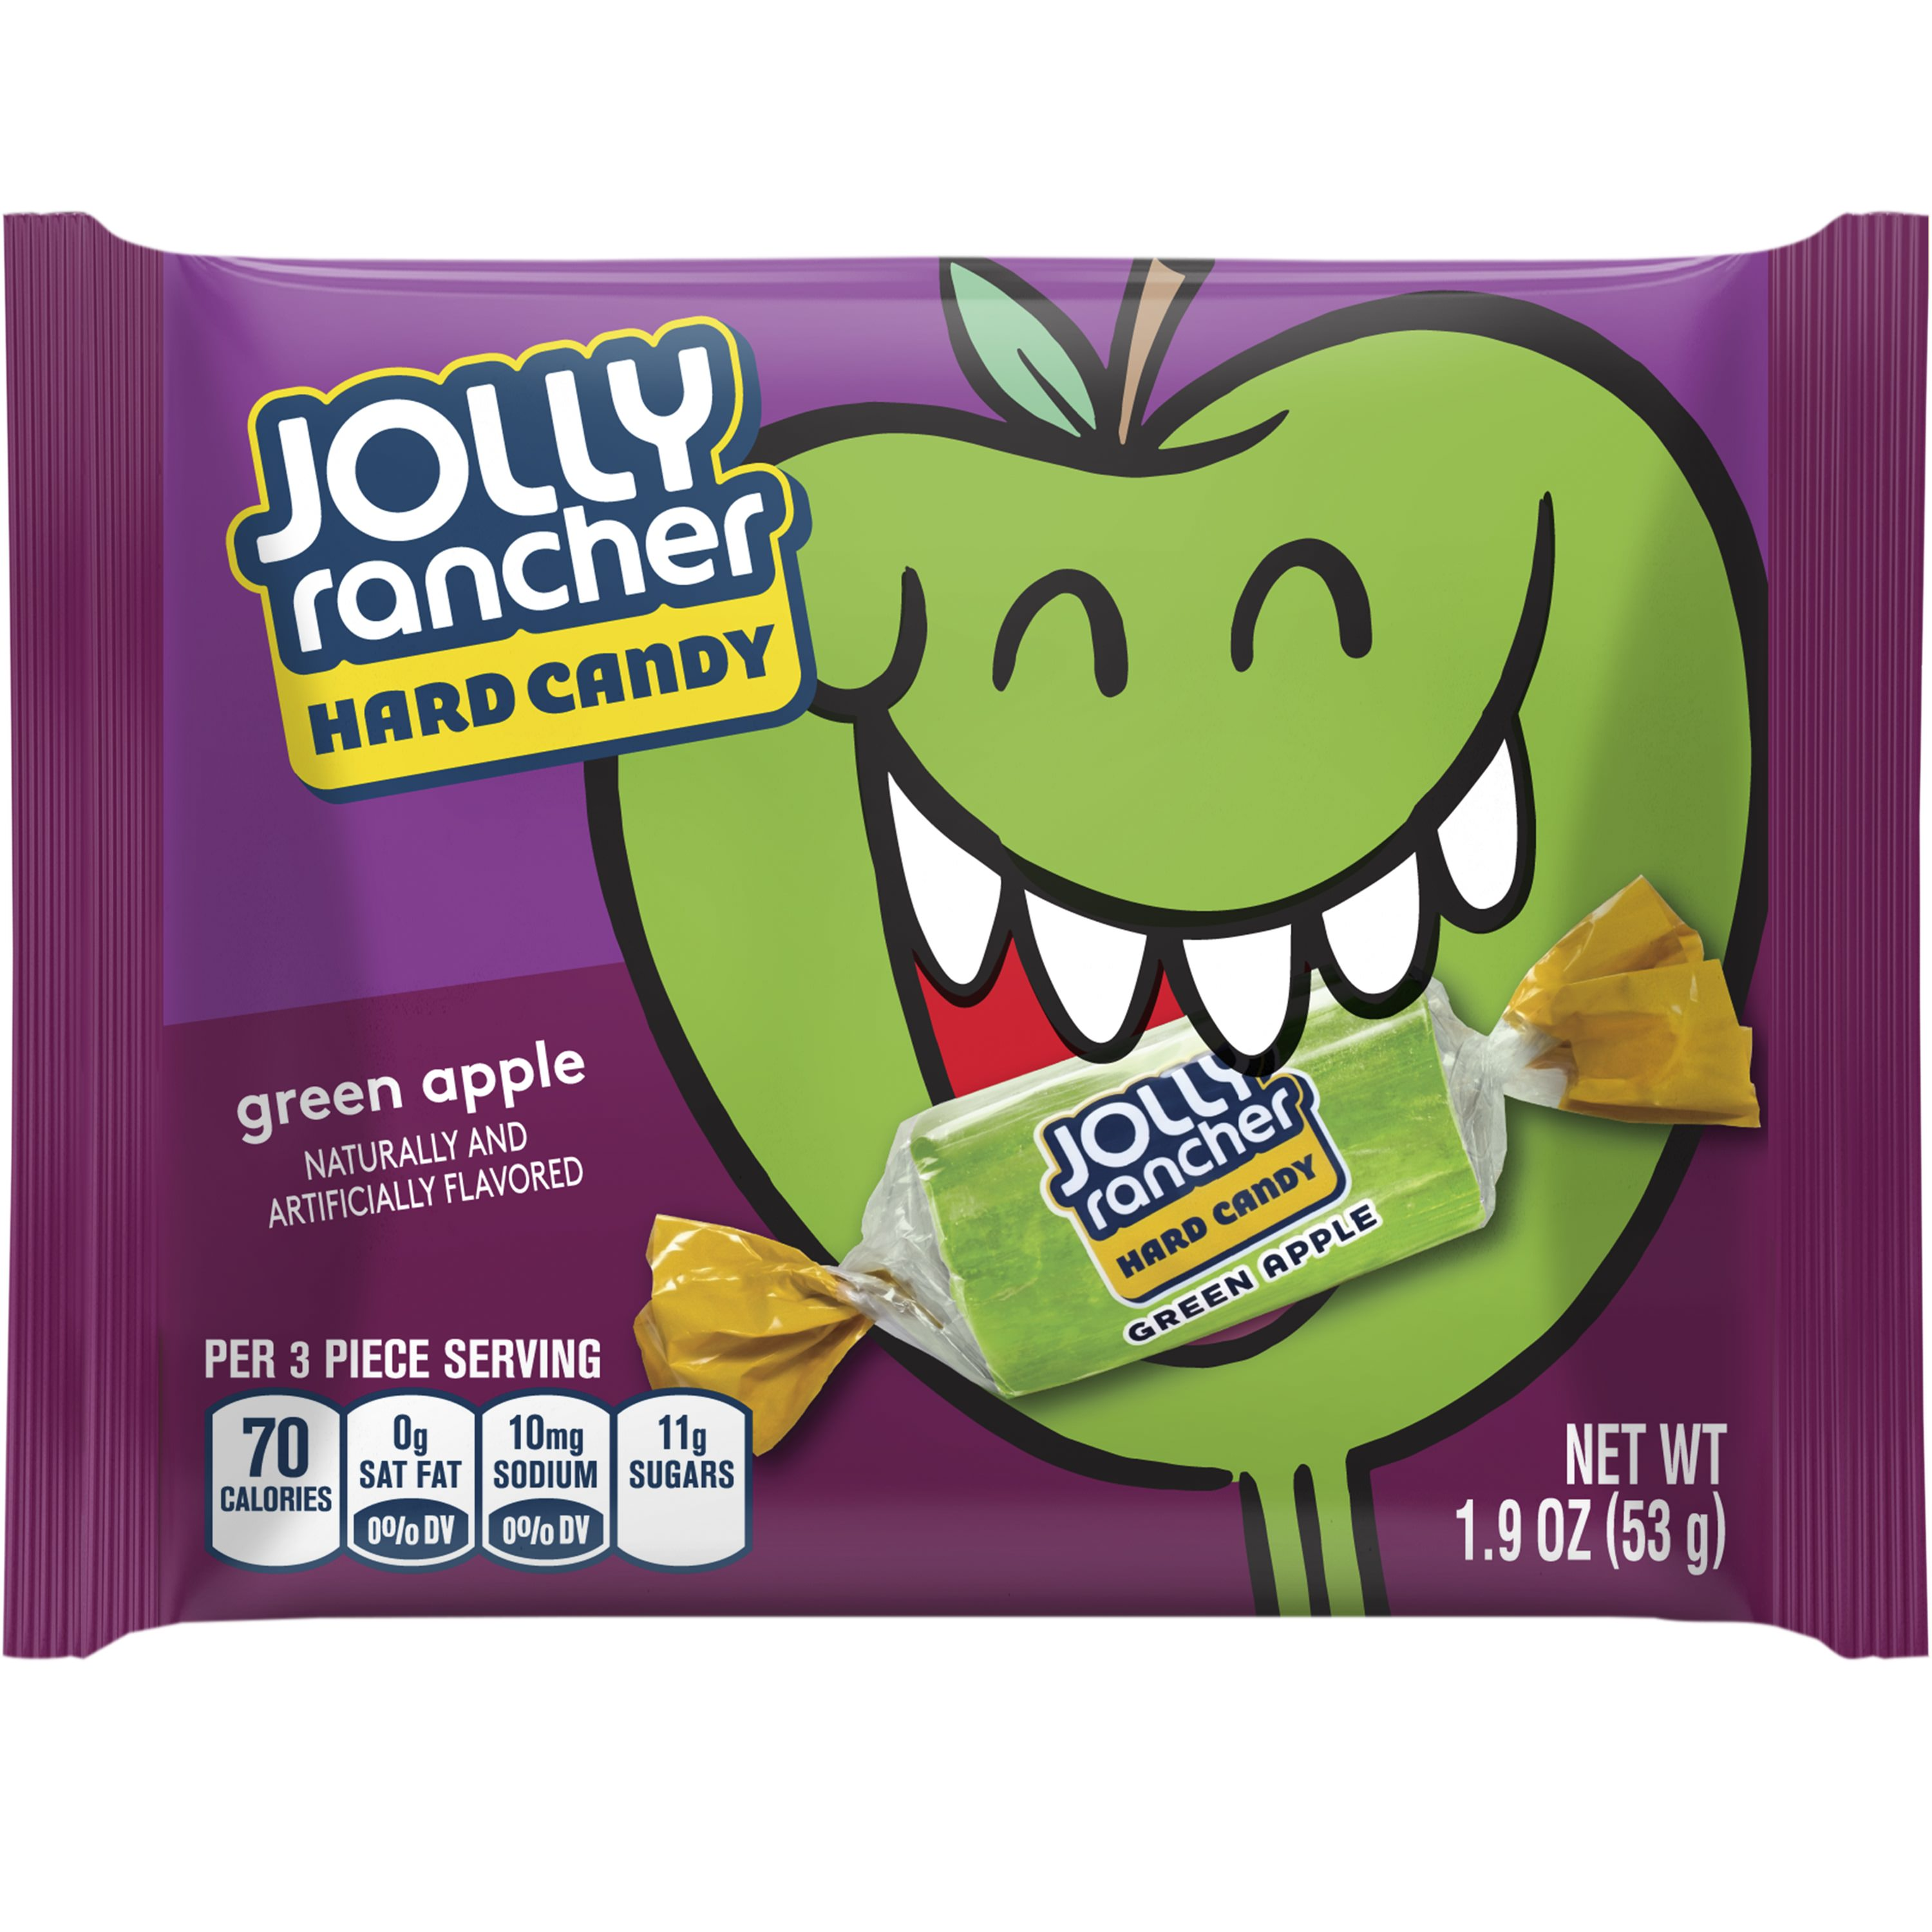 (6 Pack) JOLLY RANCHER Green Apple Flavored Hard Candy, 1.9 oz